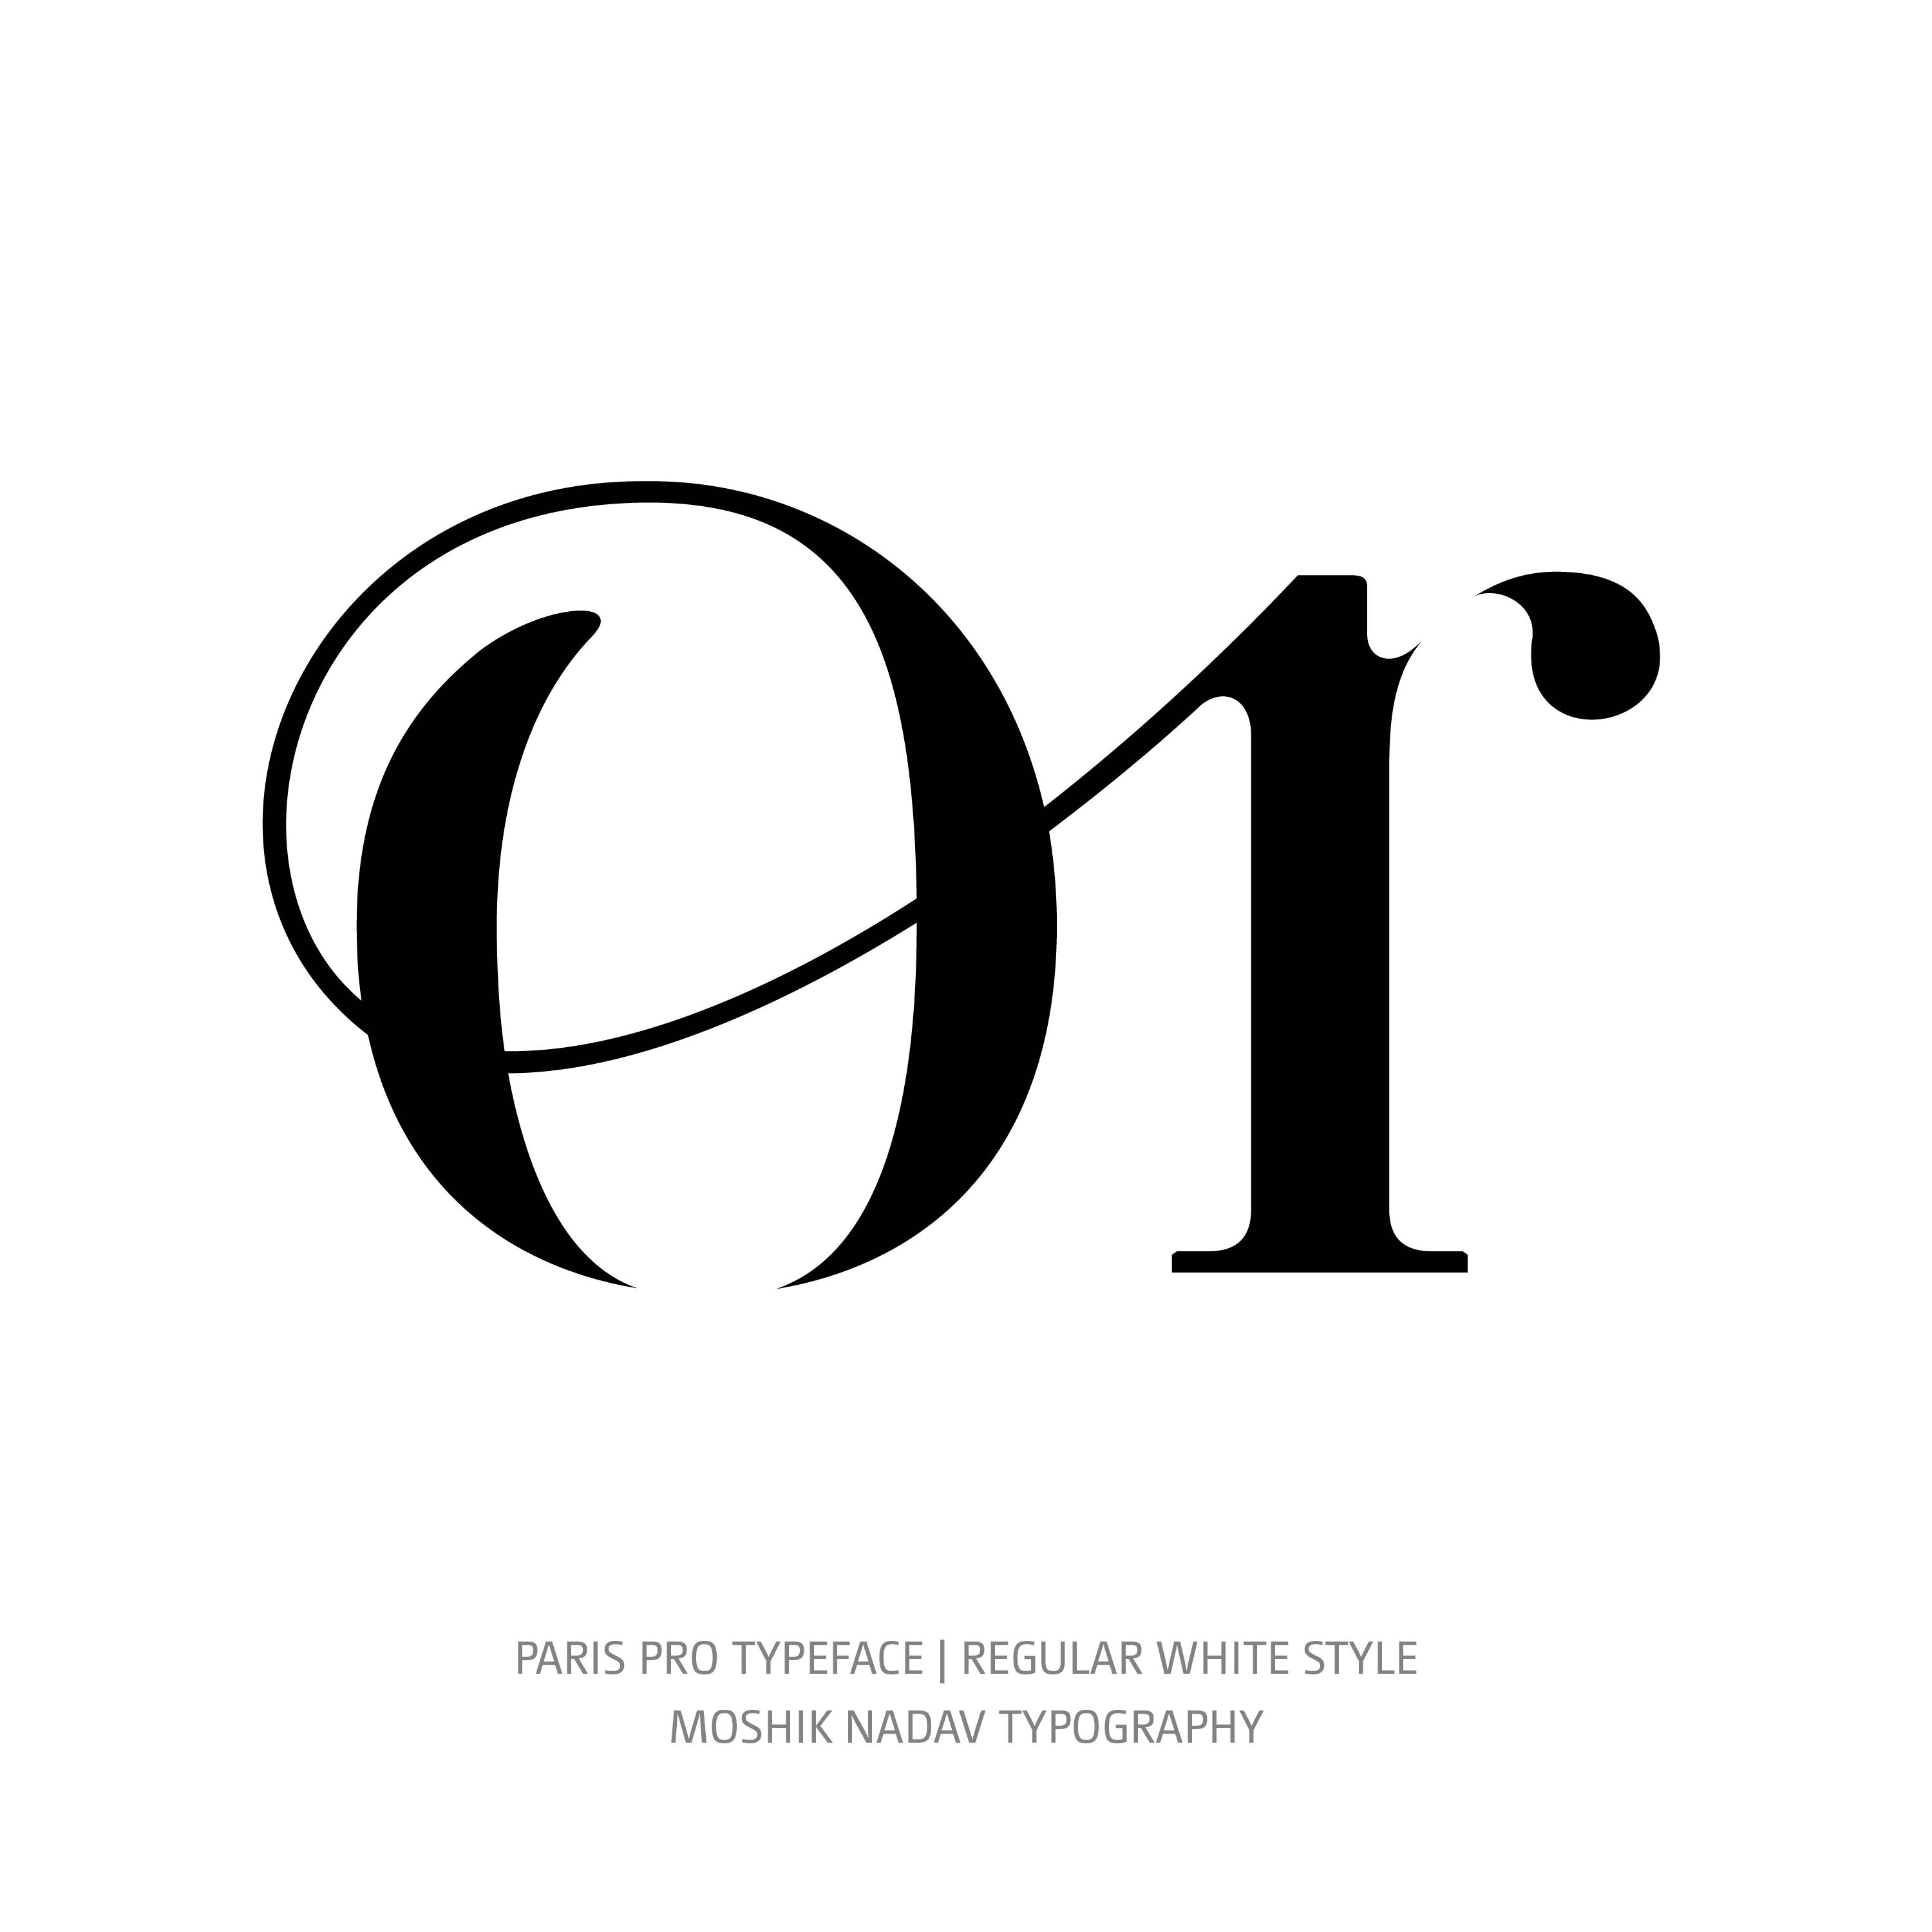 Paris Pro Typeface Regular White or alt ligature